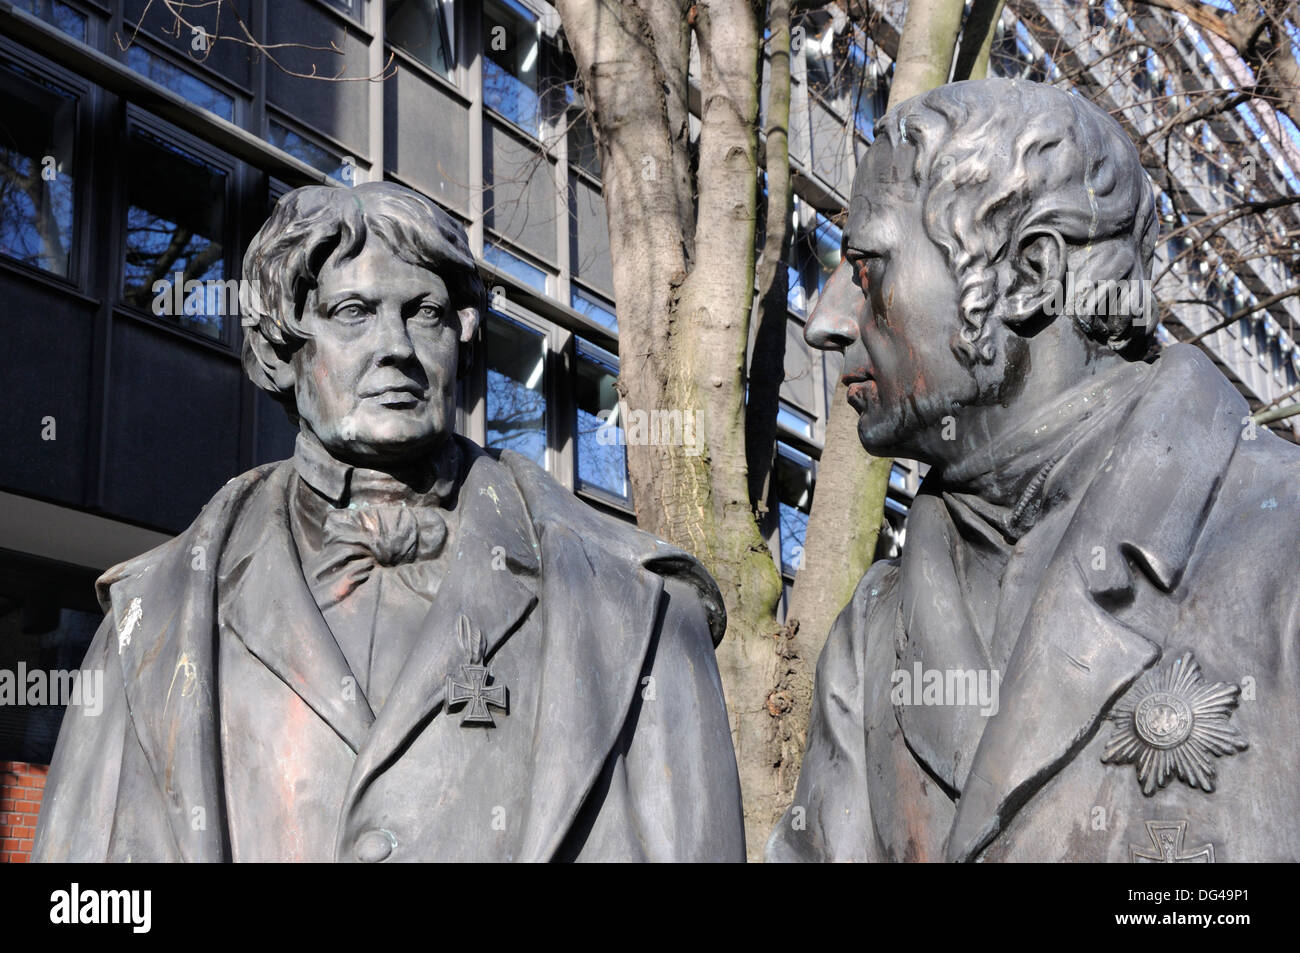 Sculpture of Christian P. W. Beuth and Wilhelm von Humboldt outside the German Institute for Standardization, Berlin, Germany. - Stock Image